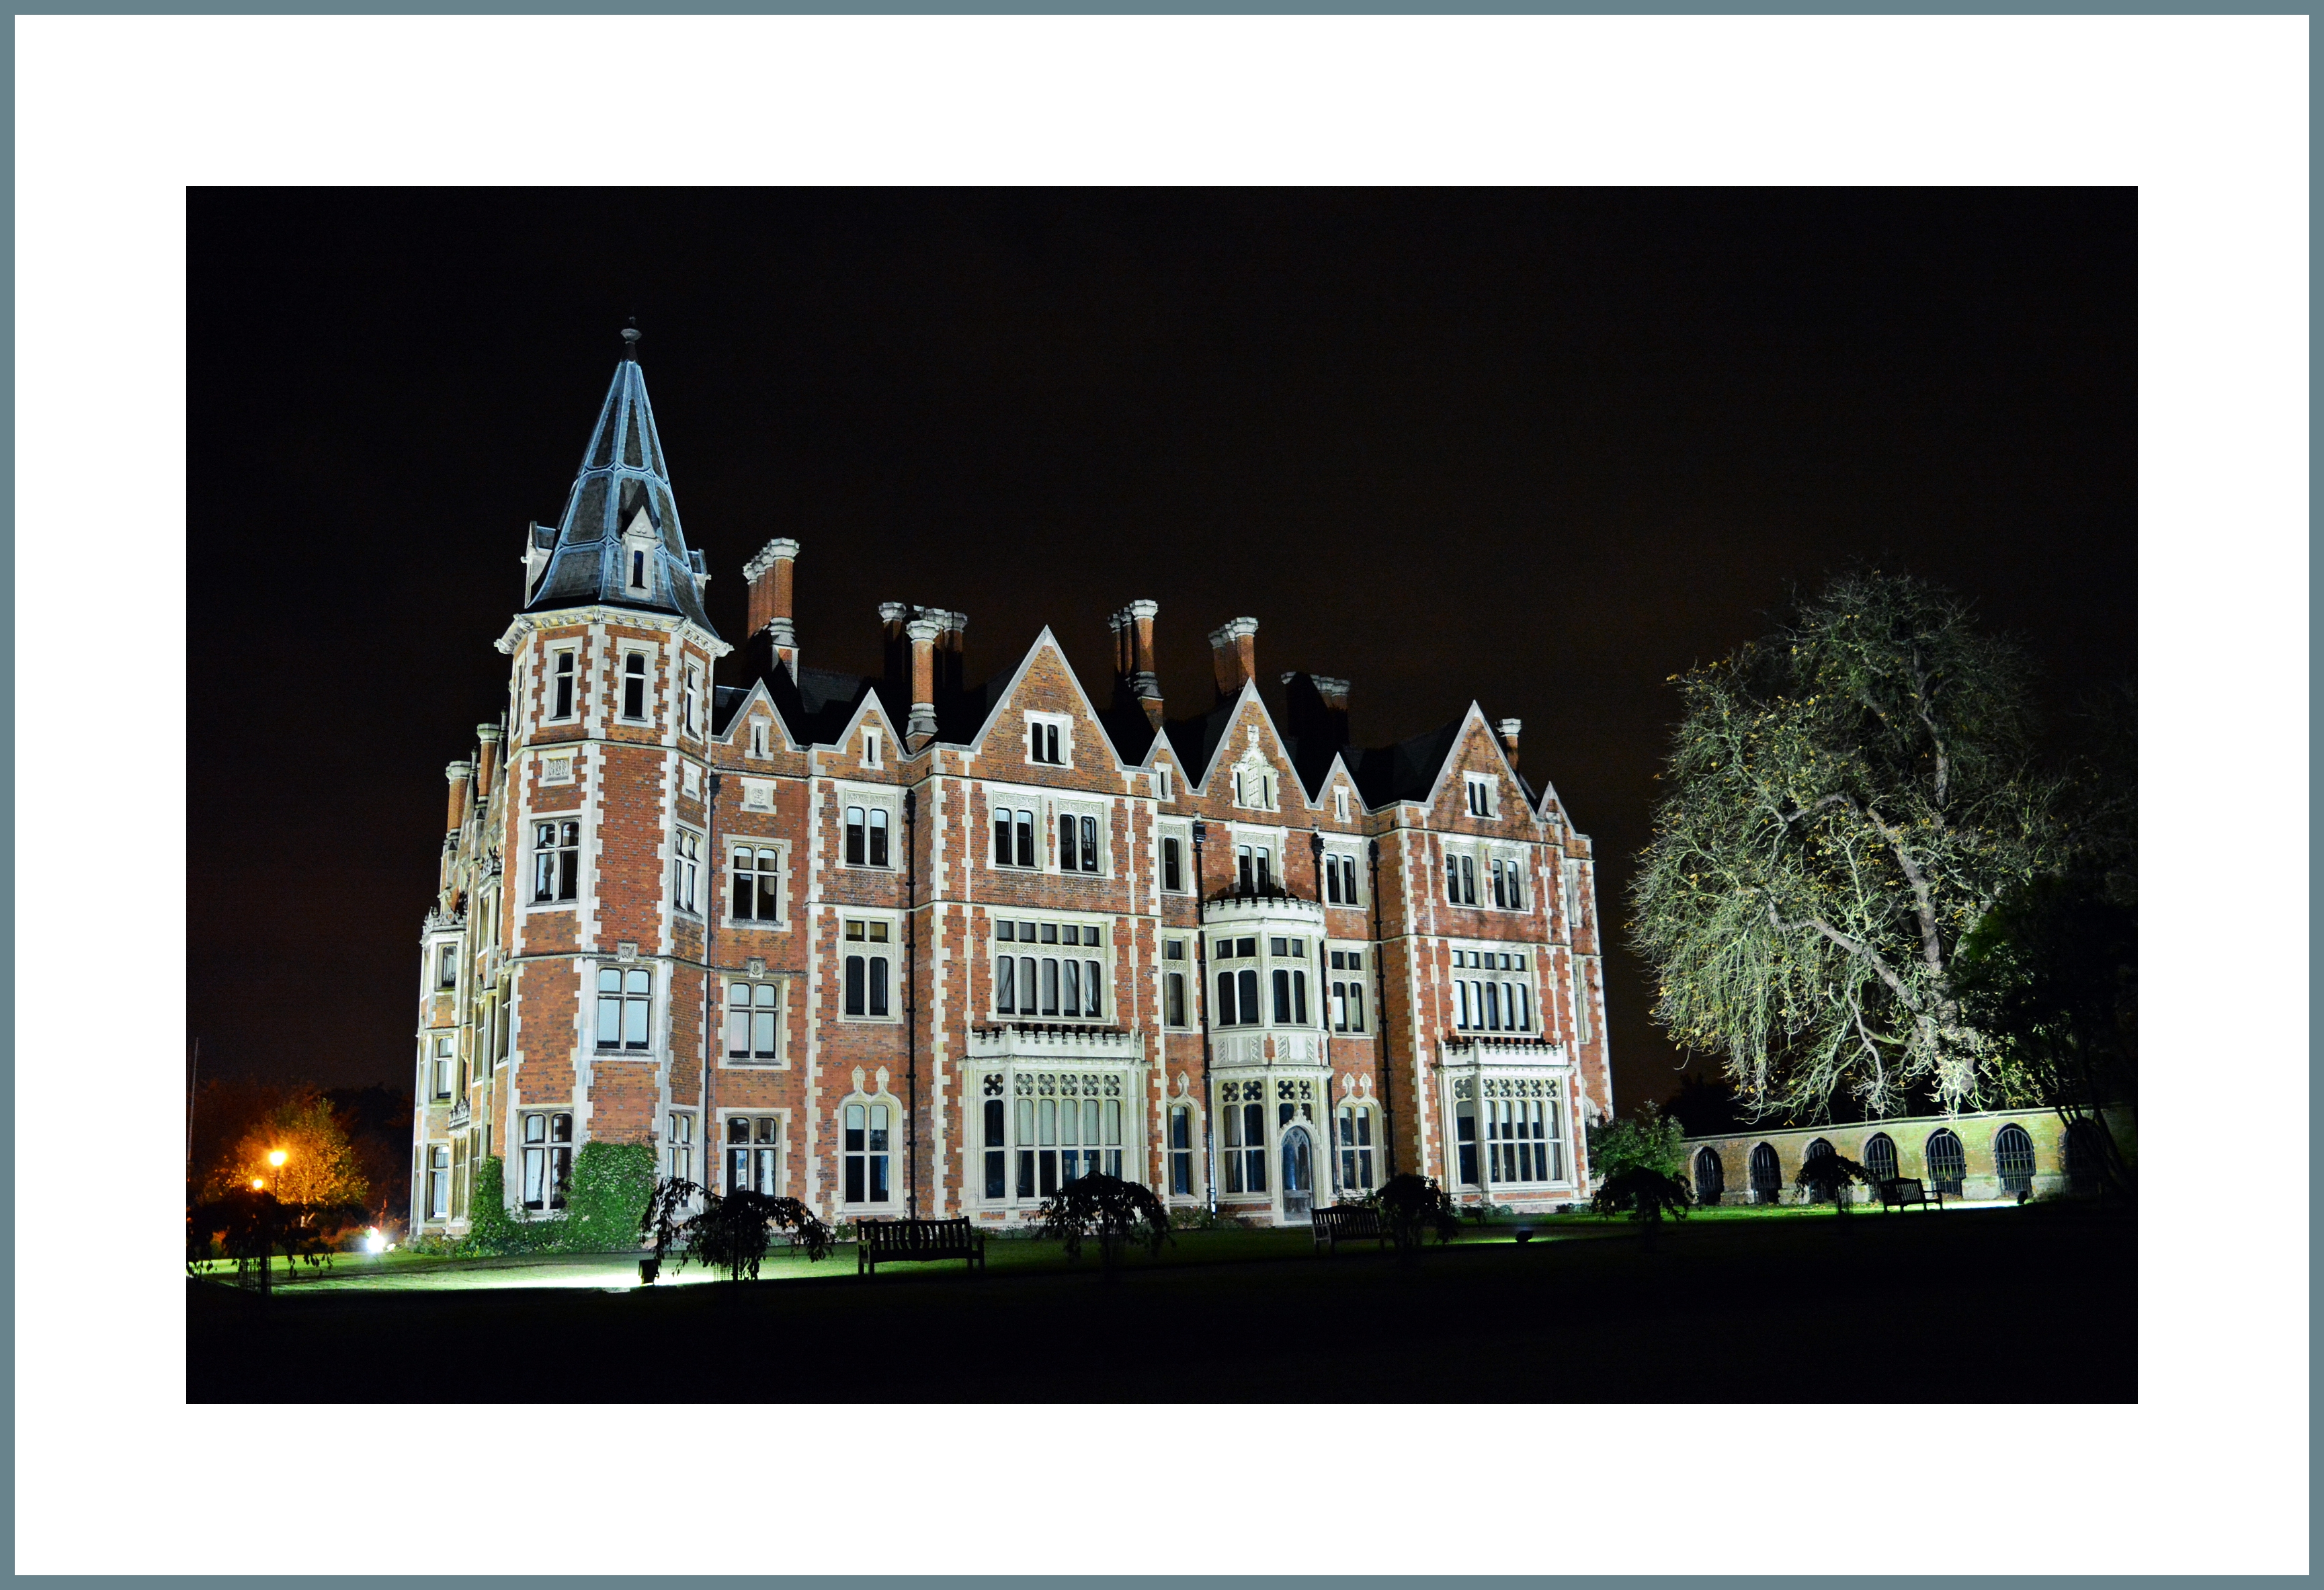 Taplow Court - SGI UK